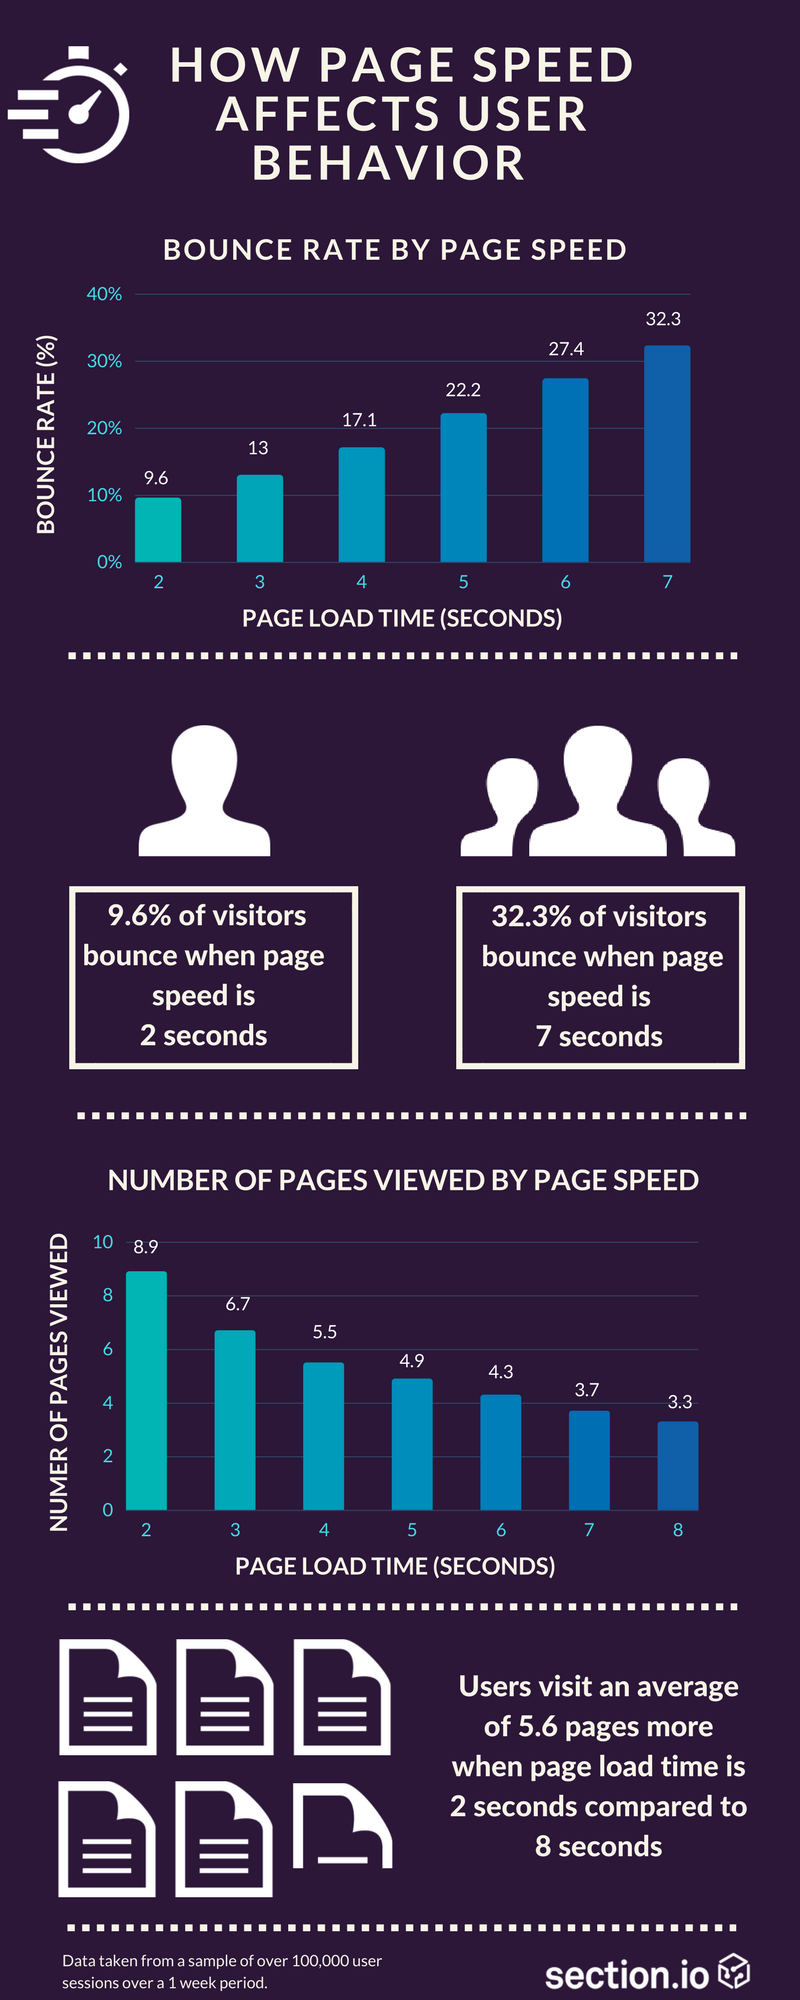 NVMe VPS vs SSD: An infographic showing how slow page speed negatively affects user behavior